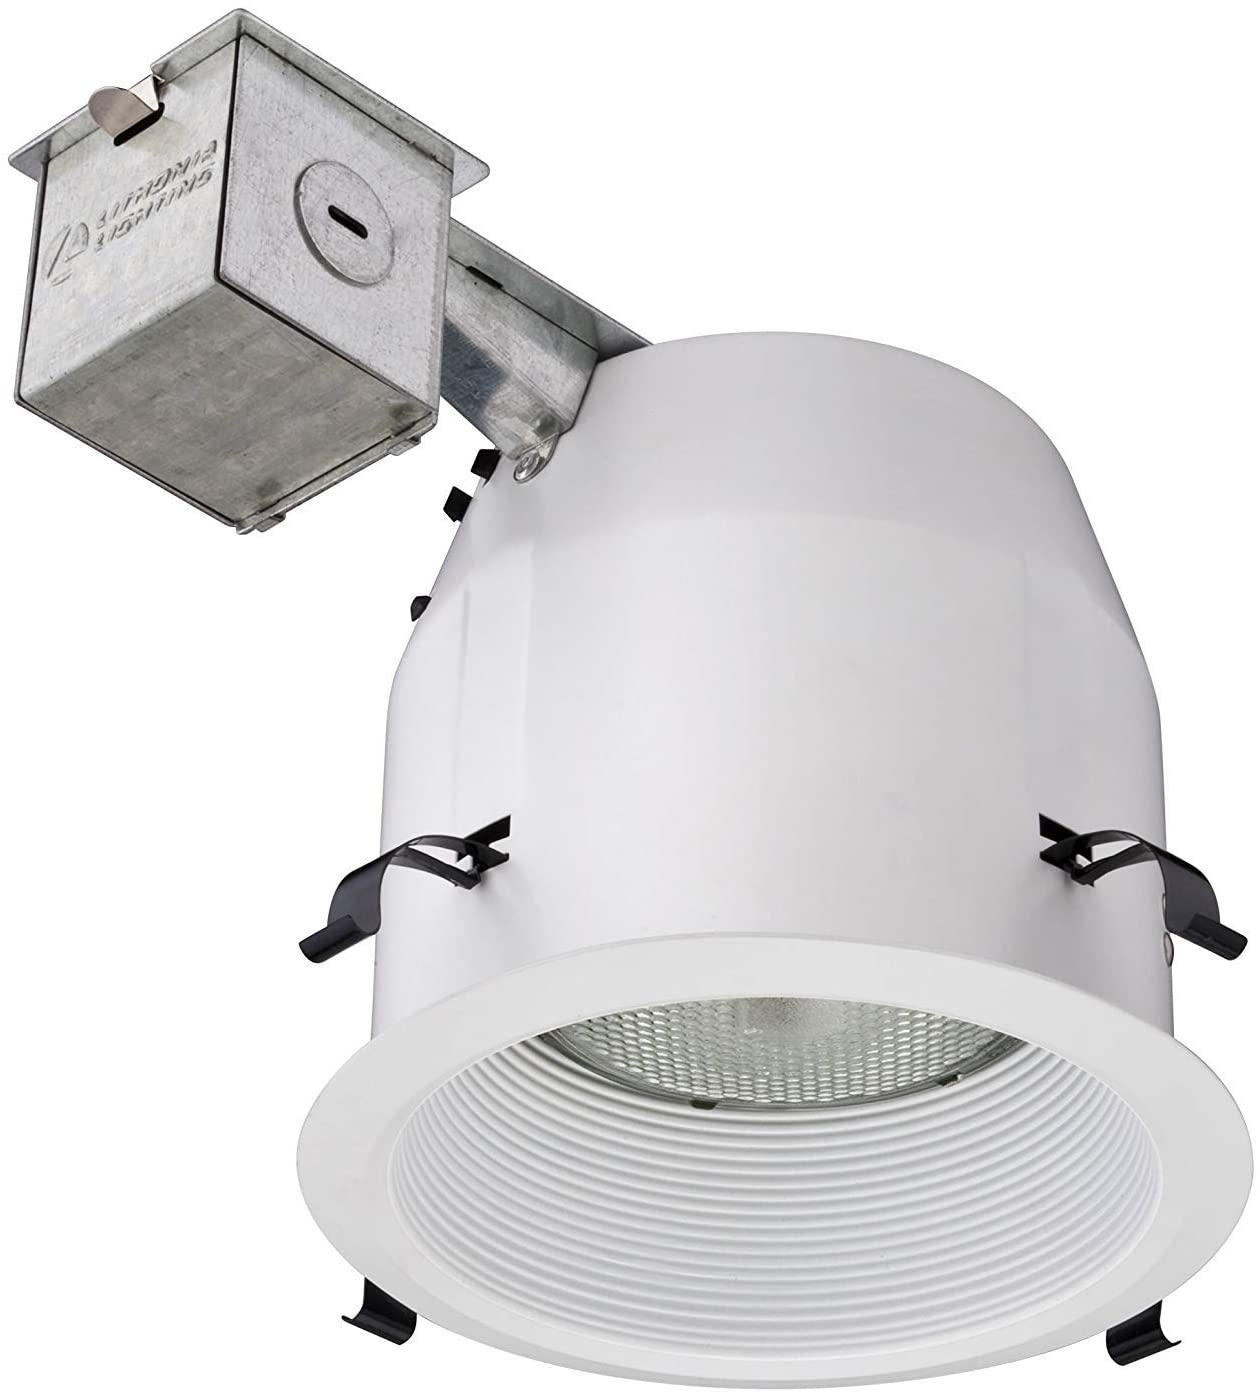 Lithonia Lighting LK5BMW M6 5 Inch Baffle Kit with Halogen Lamp Included in White